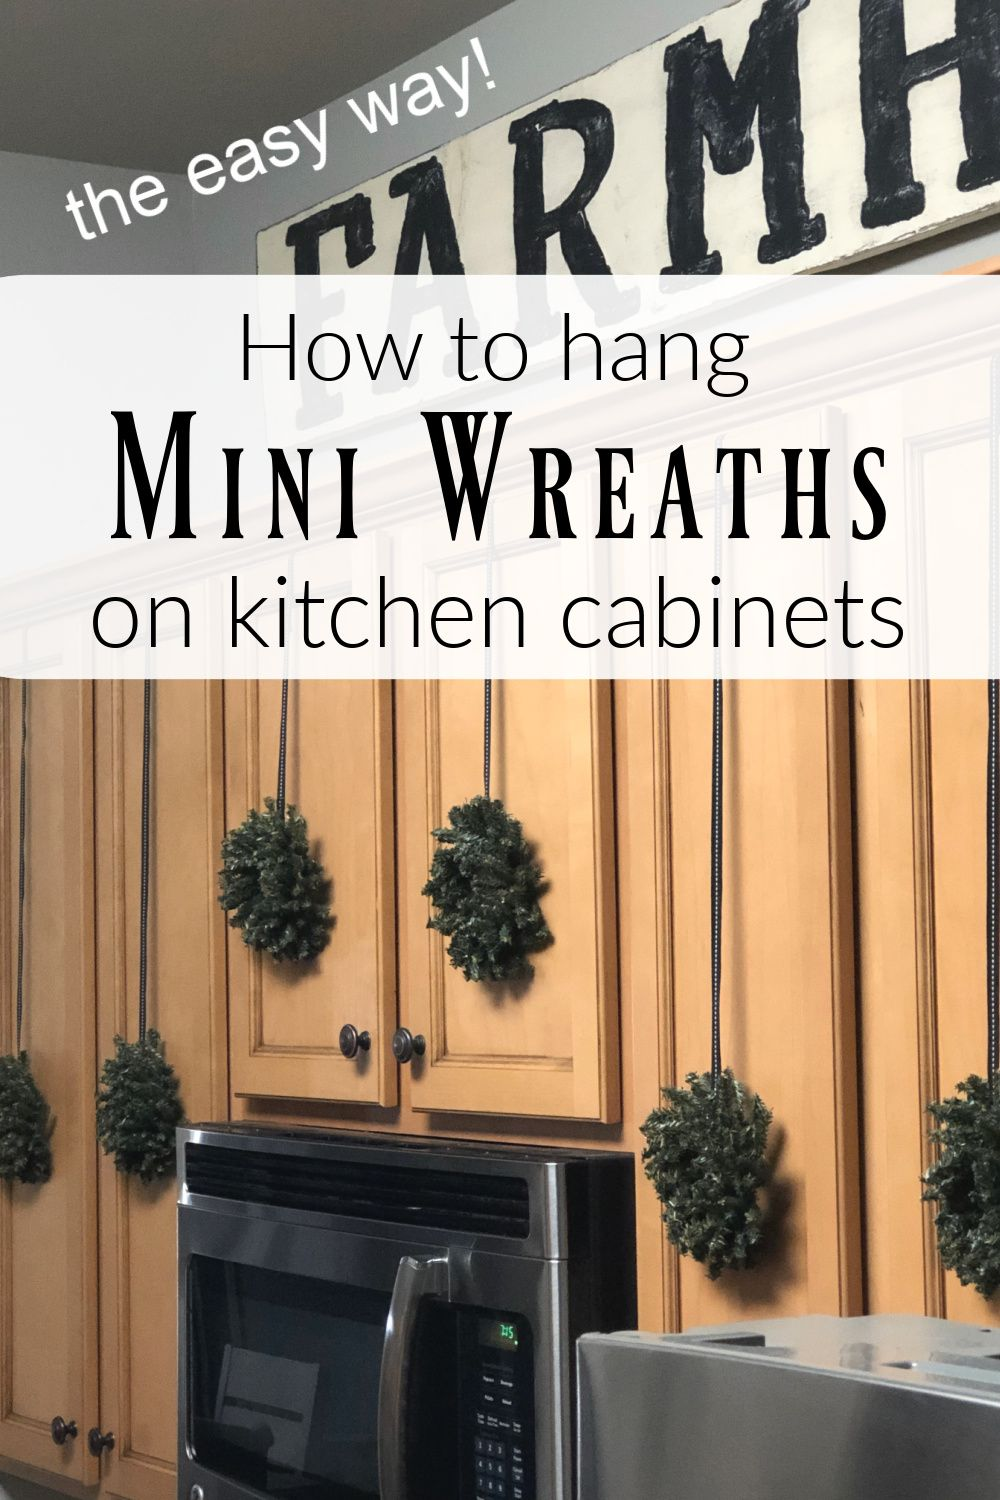 Eye Catching Mini Wreaths That Will Transform Your Holiday Kitchen Cabinets Mini Wreaths Holiday Kitchen Diy Christmas Decorations Easy